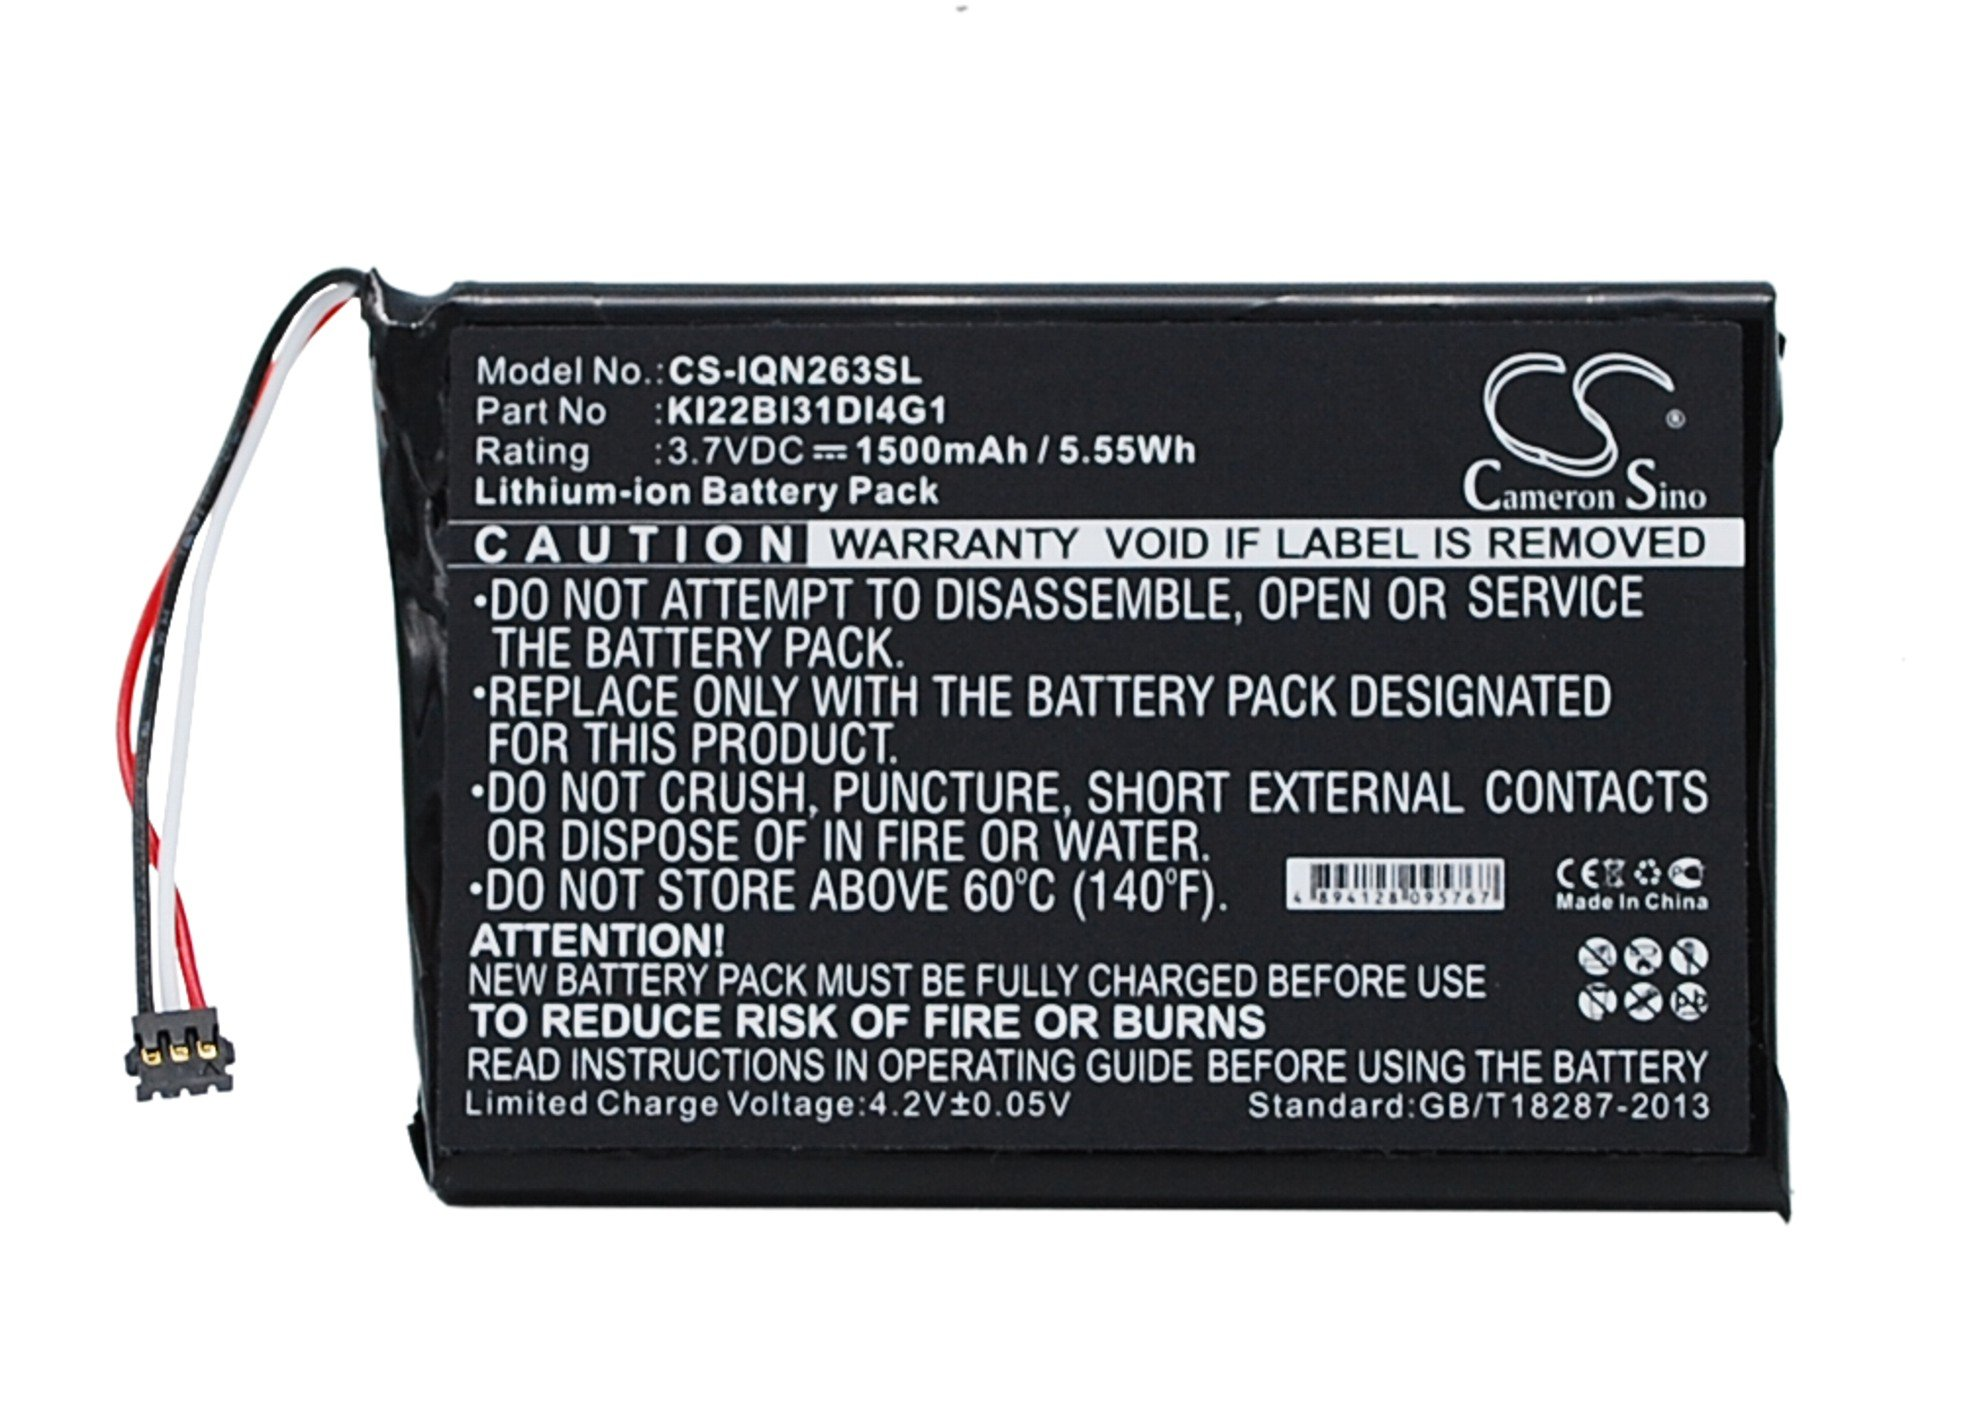 Replacement Battery for Garmin 010-01188-02 2689LMT 2689LMT 6-inch Nuvi 2639LMT Nuvi 2639LMT 6-inch Nuvi 2689LMT Part NO Garmin KI22BI31DI4G1